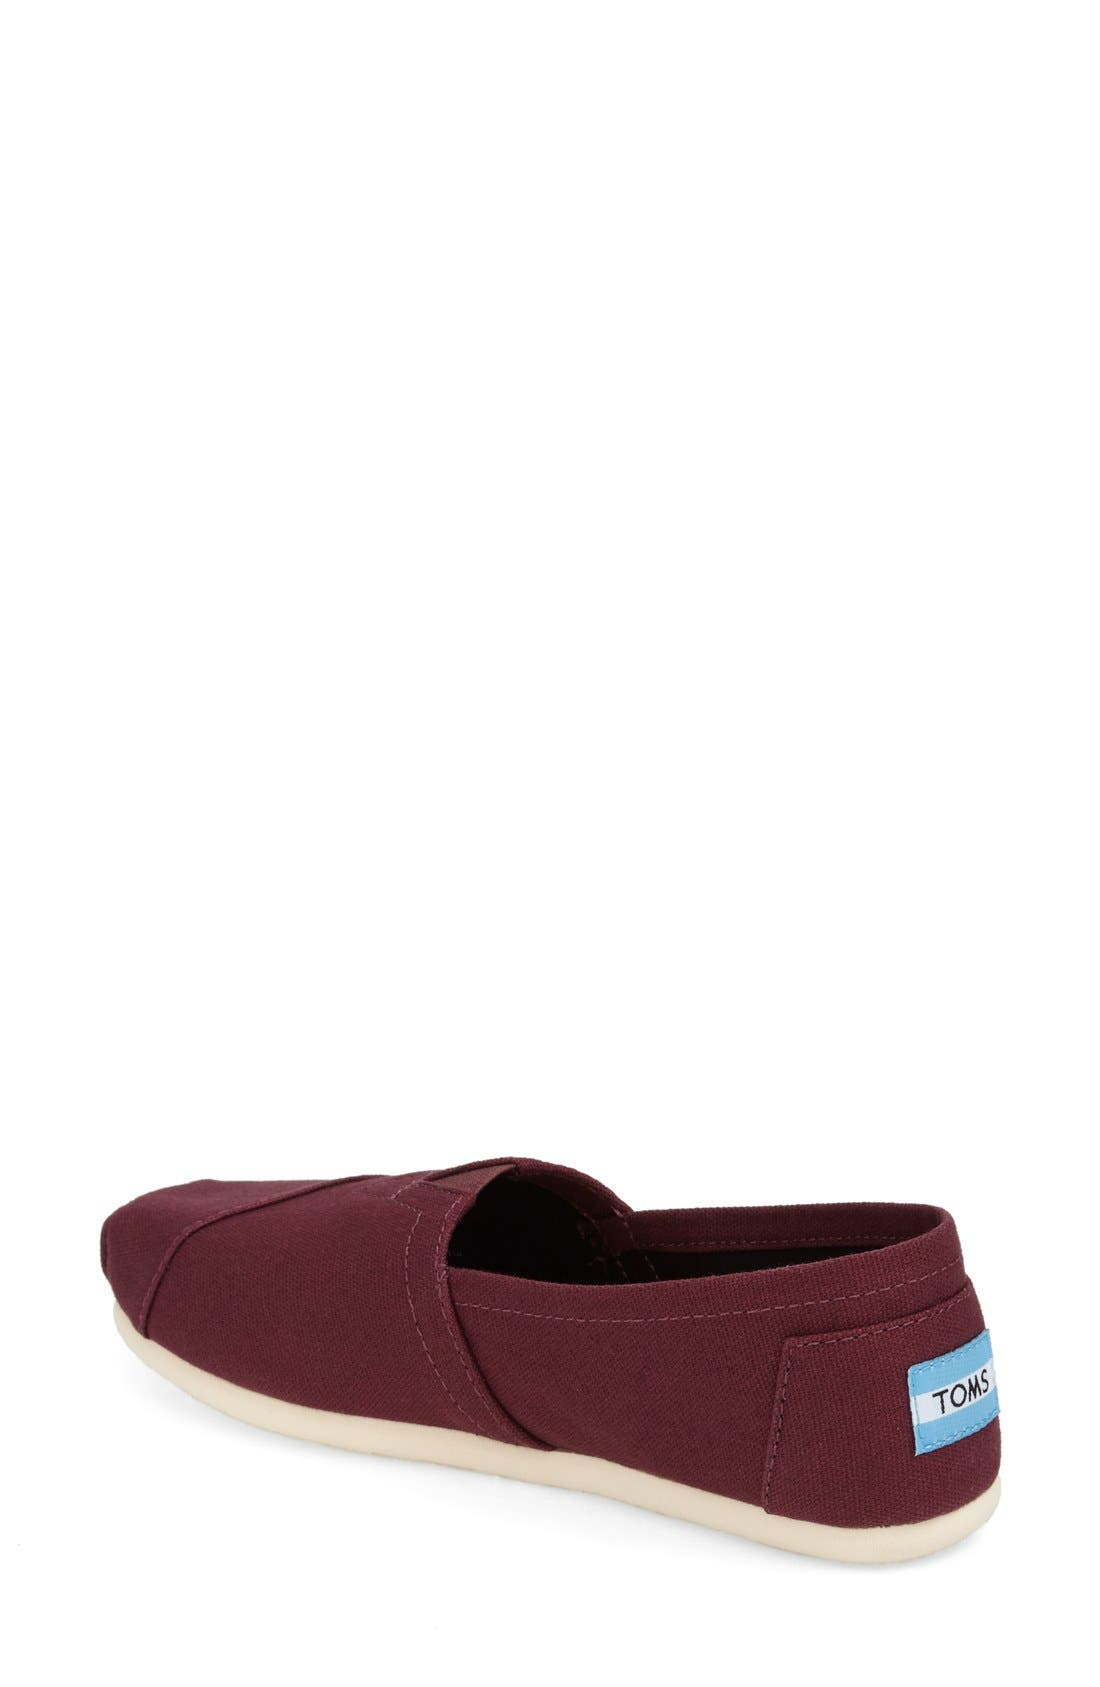 Alternate Image 2  - TOMS Classic Slip-On (Women)